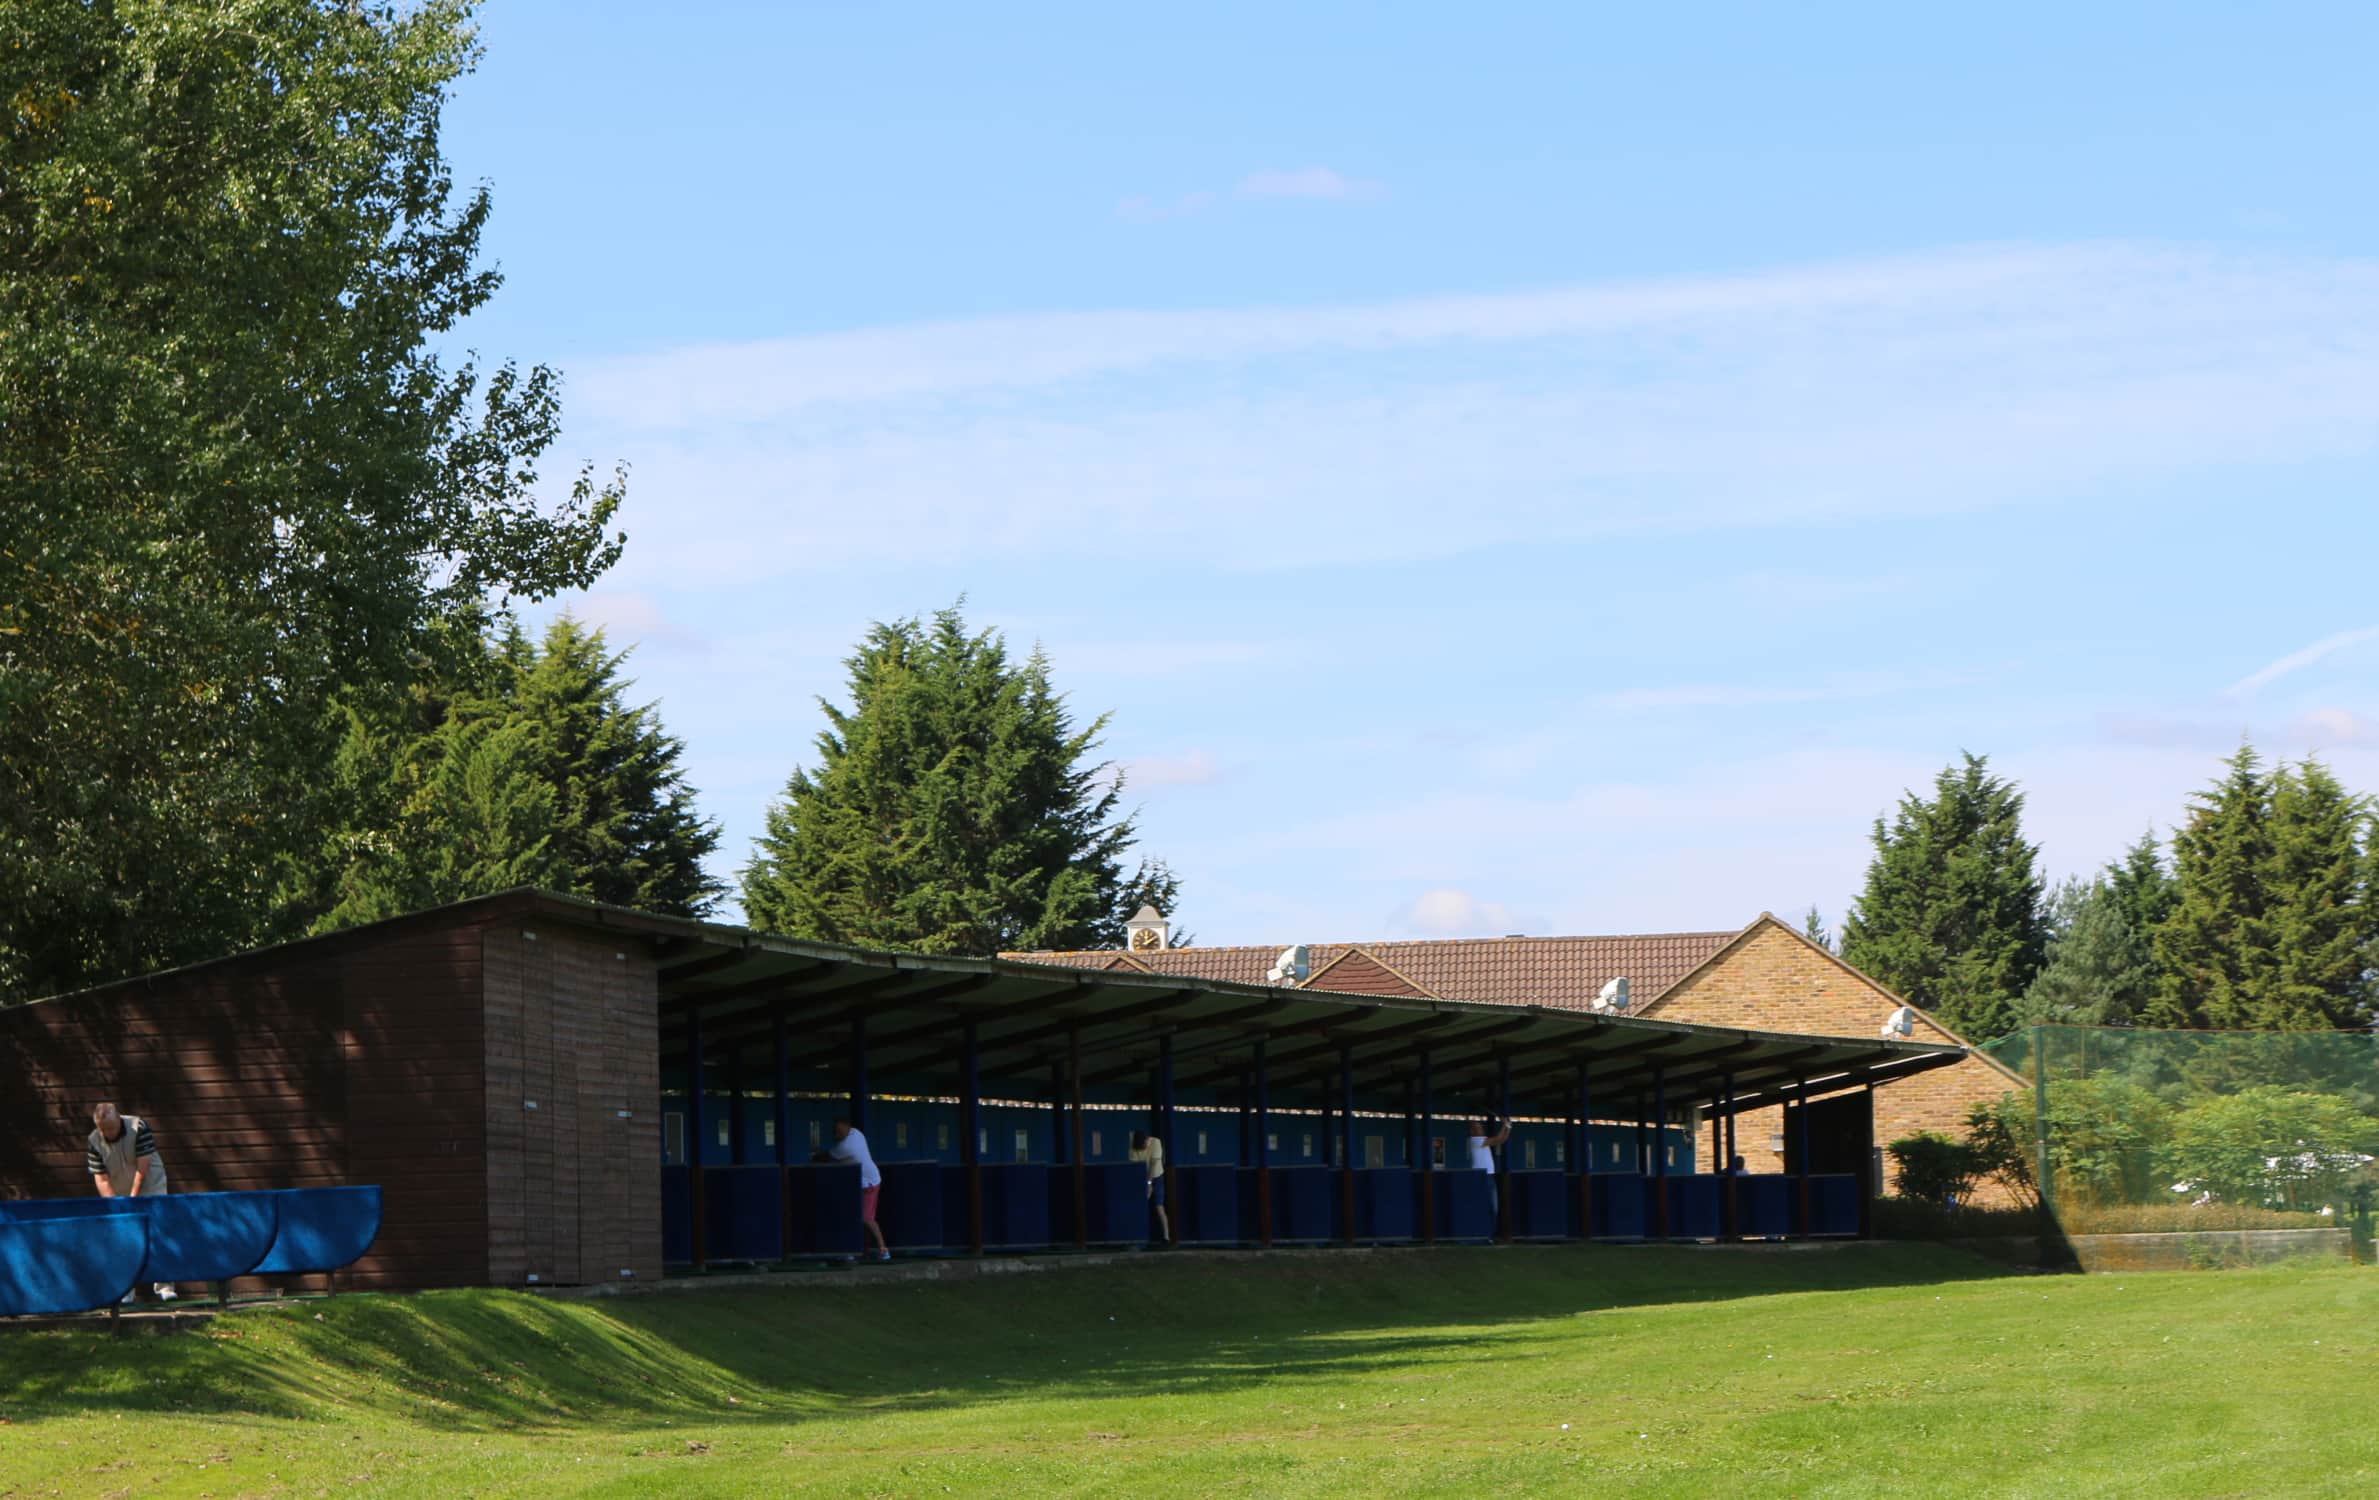 Golf Range at Wexham Park golf course in Buckinghamshire